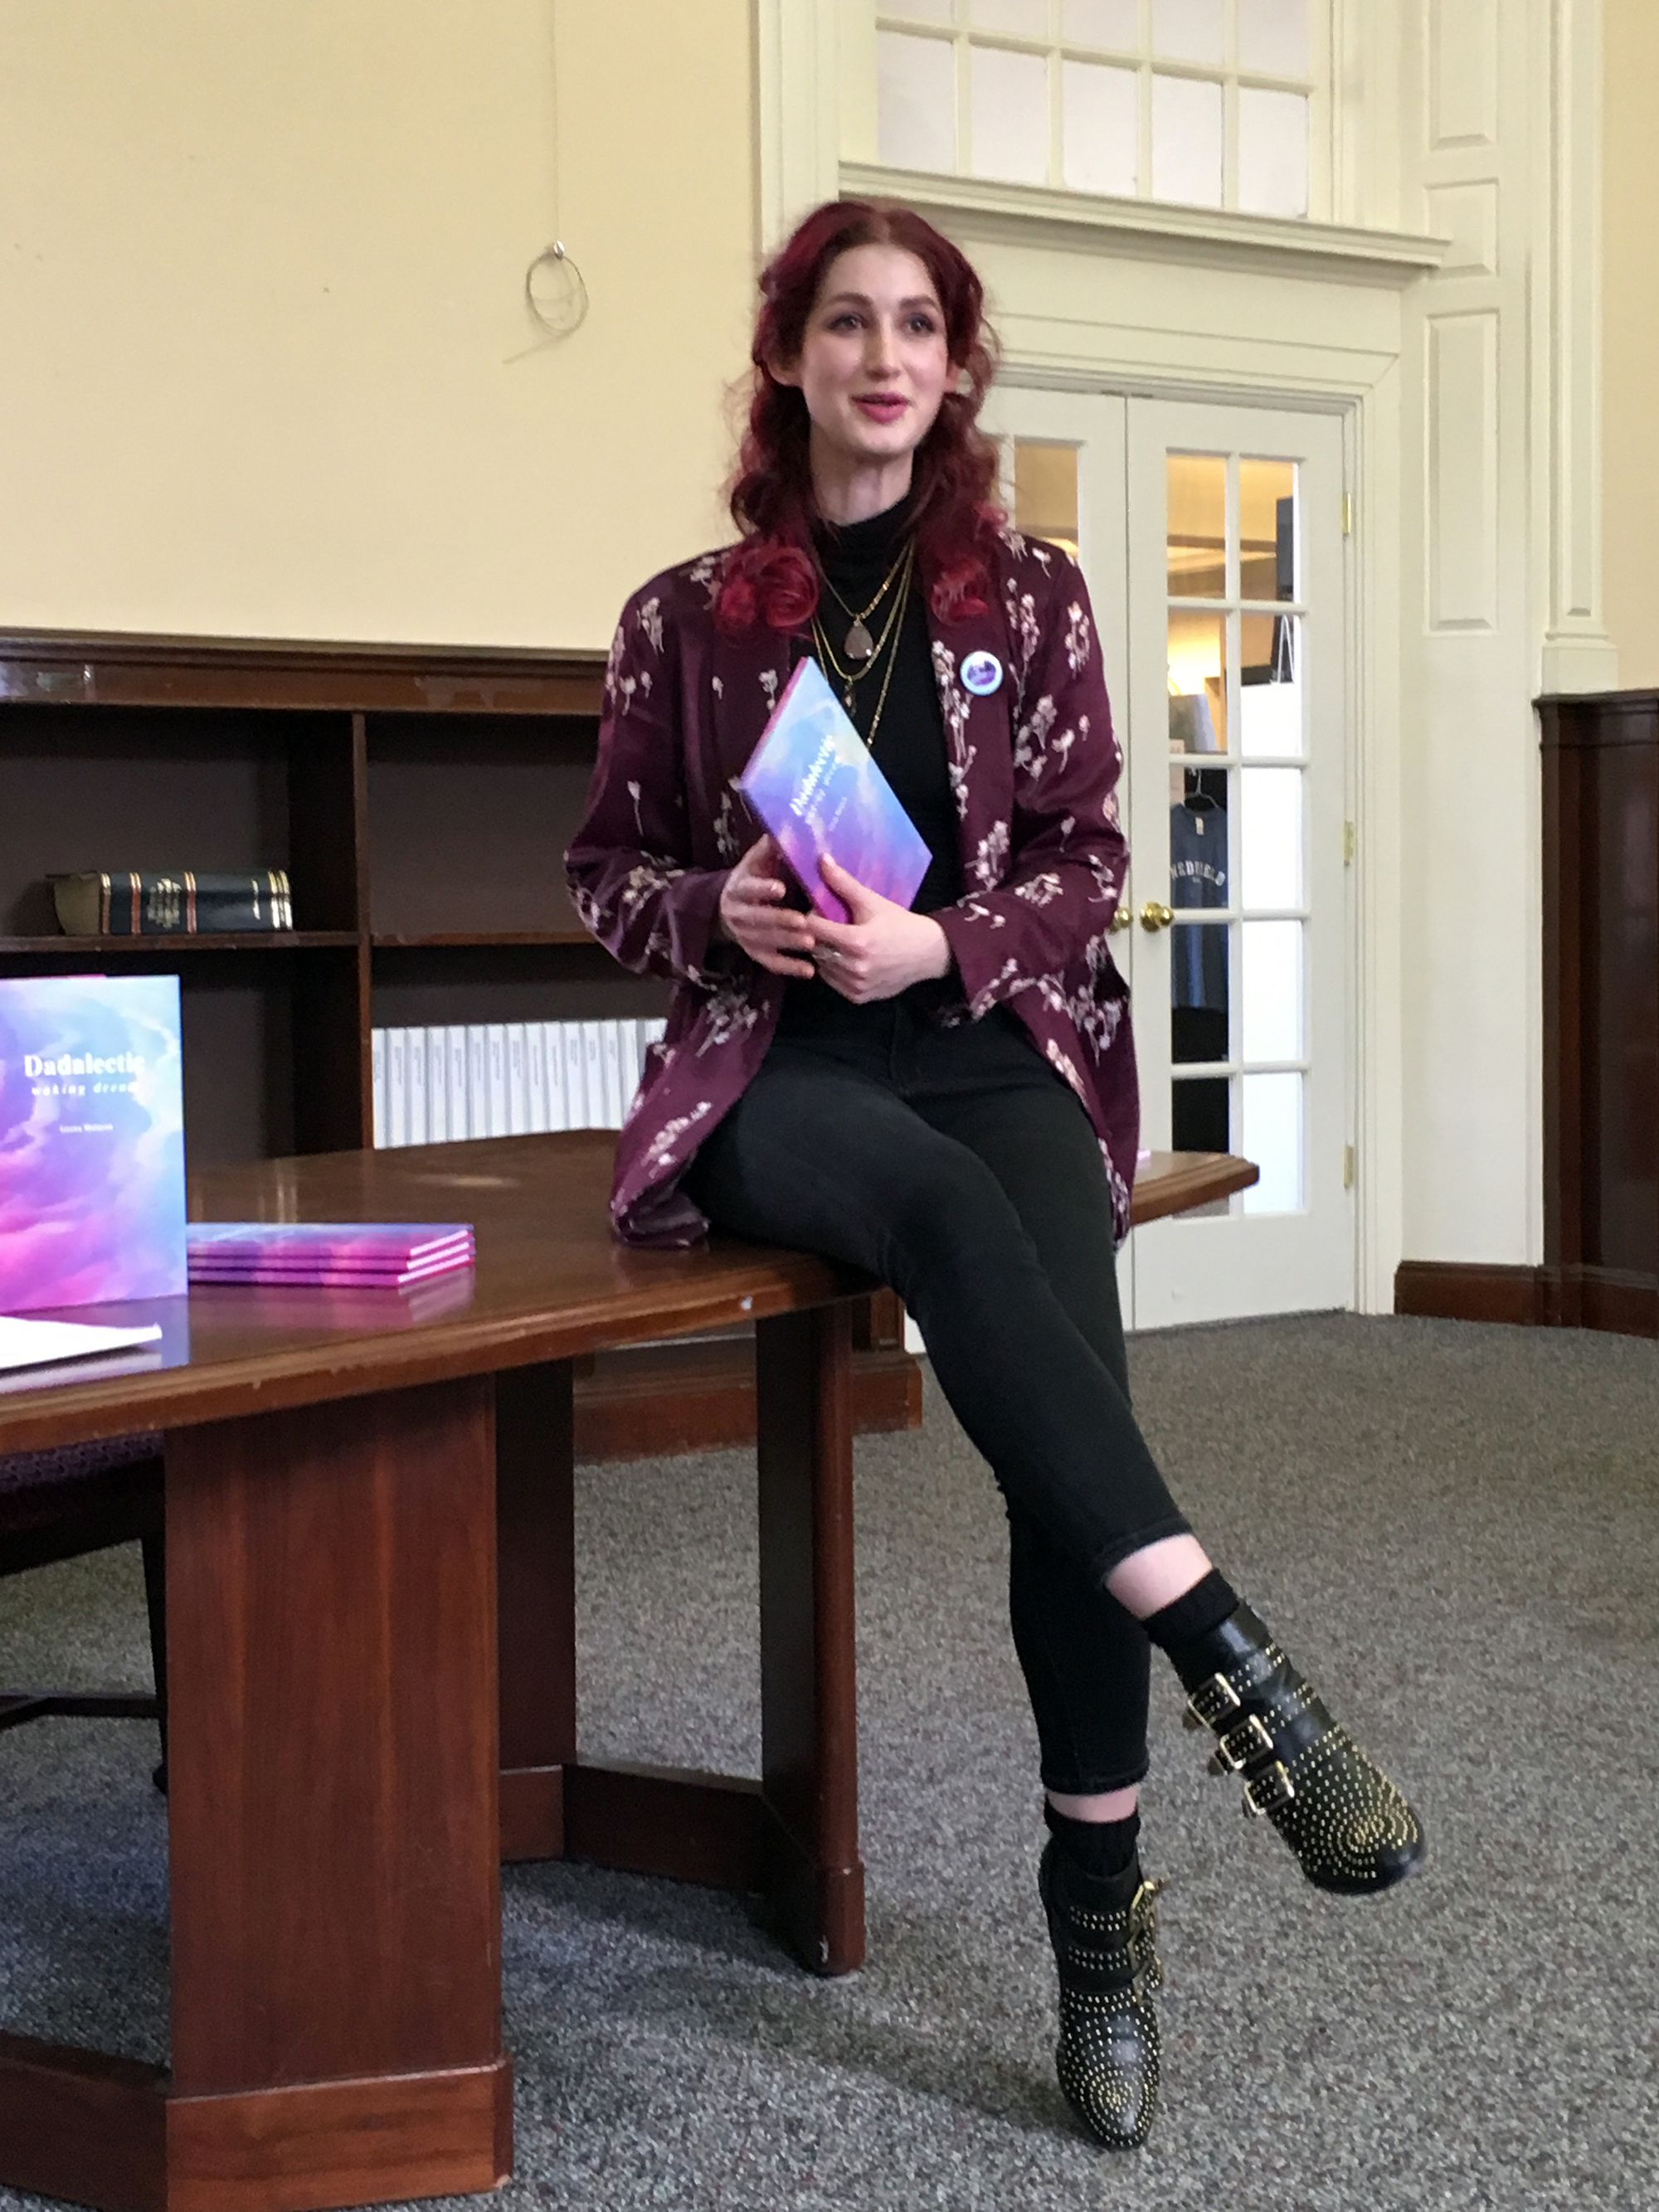 "Geena Matuson ""The Girl Mirage"" at her book reading and signing for first book ""Dadalectic: Waking Dream"" at Medfield Memorial Public Library, March 2018. See more @ http://dadalectic.com."